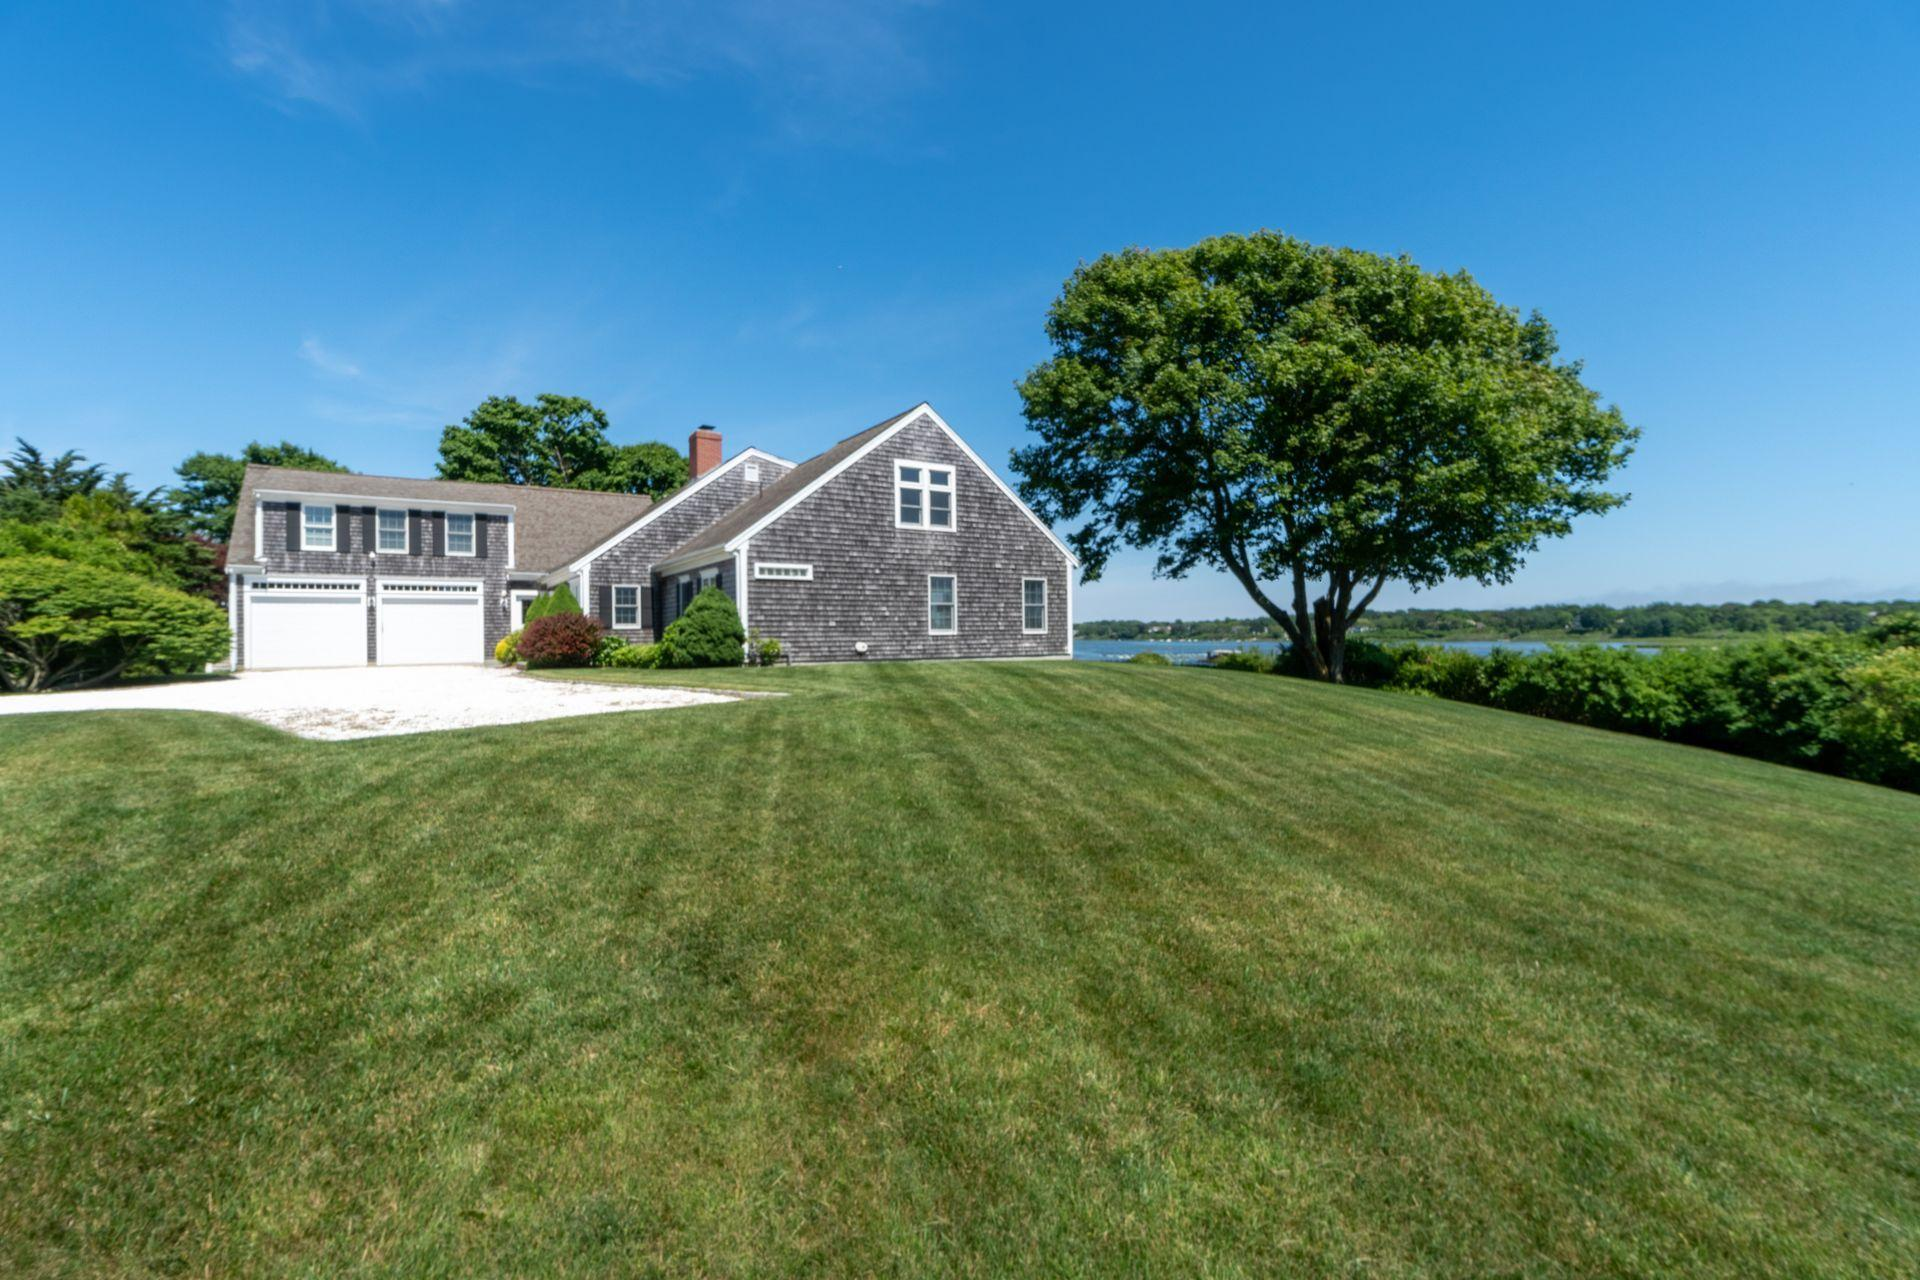 161 Kelley Lane, Chatham MA, 02633 details